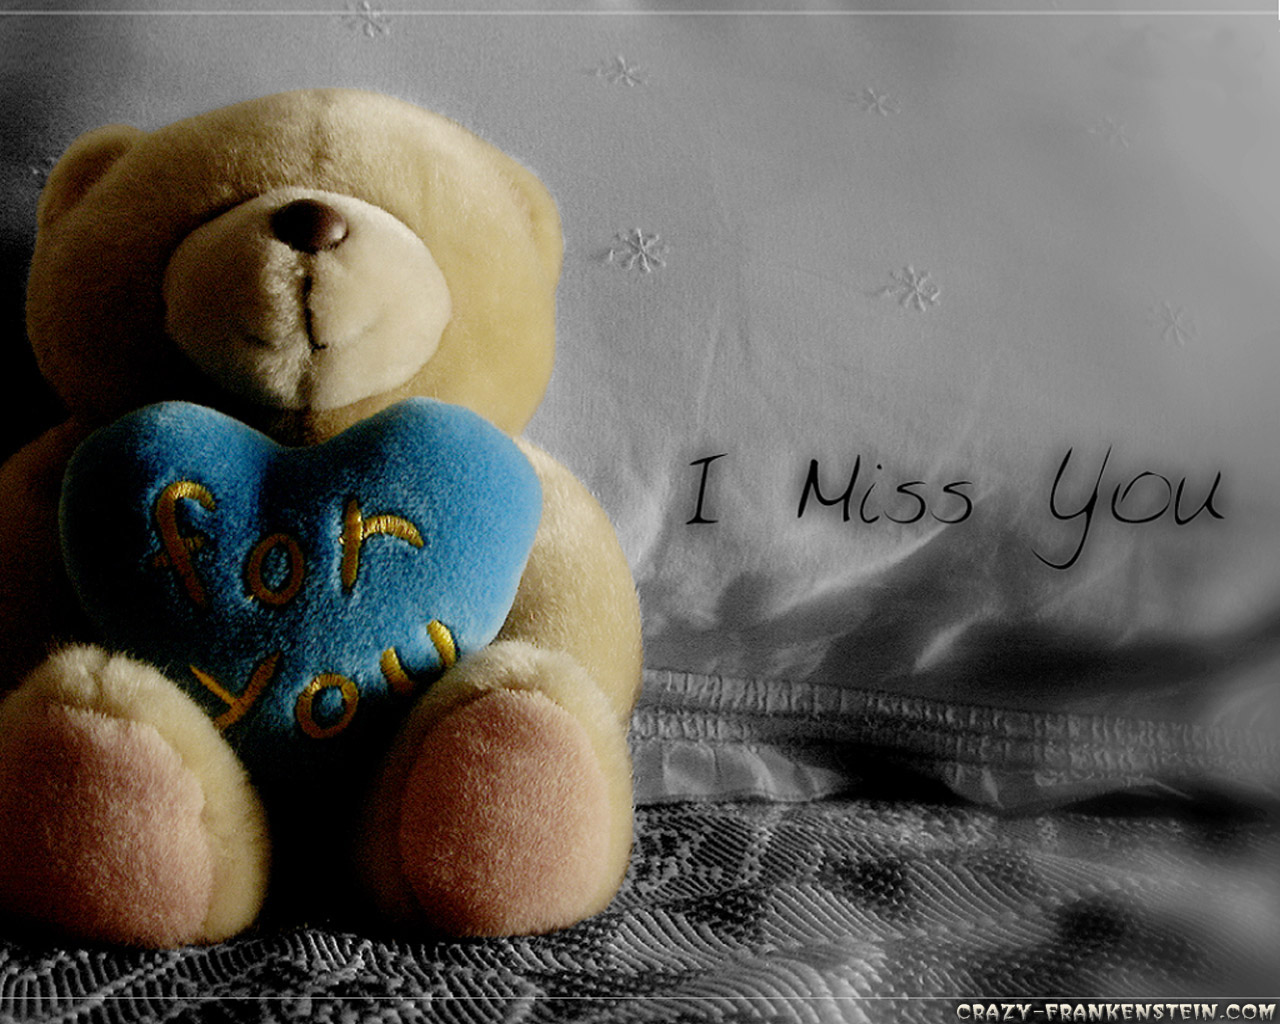 http://4.bp.blogspot.com/_3YxeXCs2BBk/TOuV1PmJ7BI/AAAAAAAAAFw/pzcrQ0PE9SQ/s1600/my-love-i-miss-u-teddy-bear-wallpapers-1280x1024.jpg